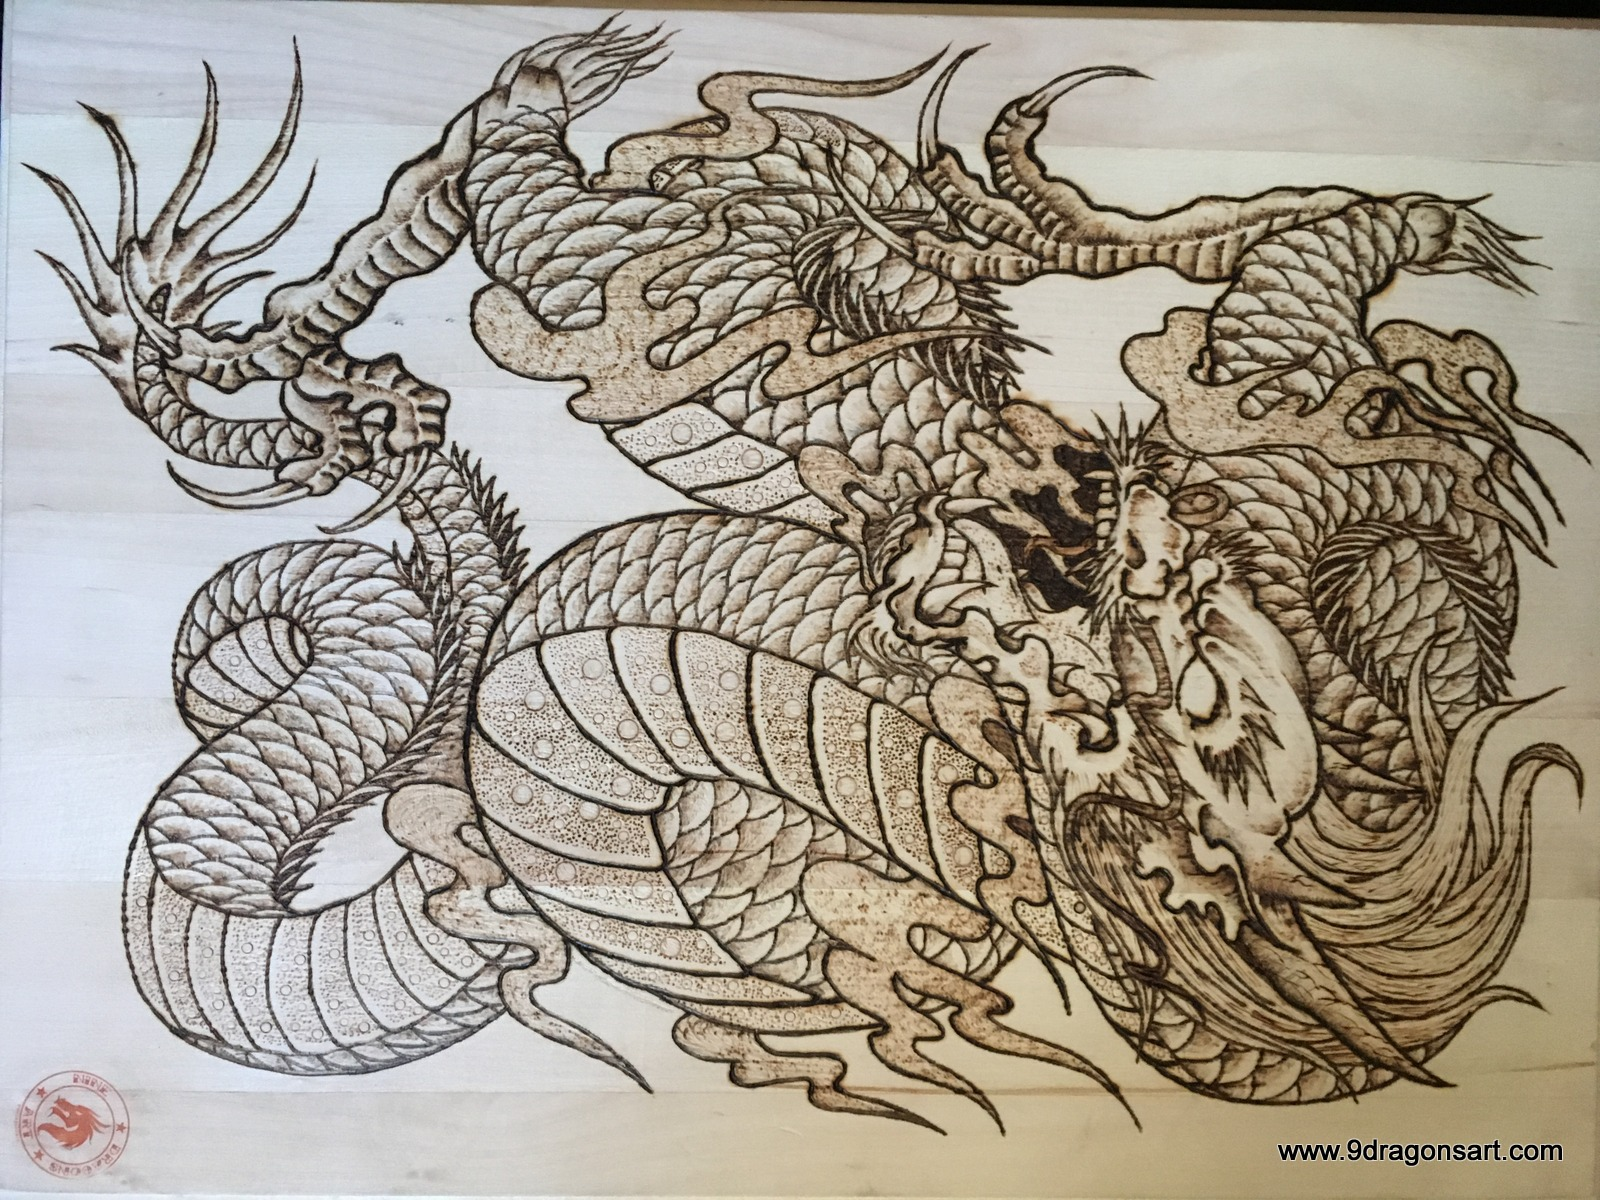 9 Dragons Art - New York